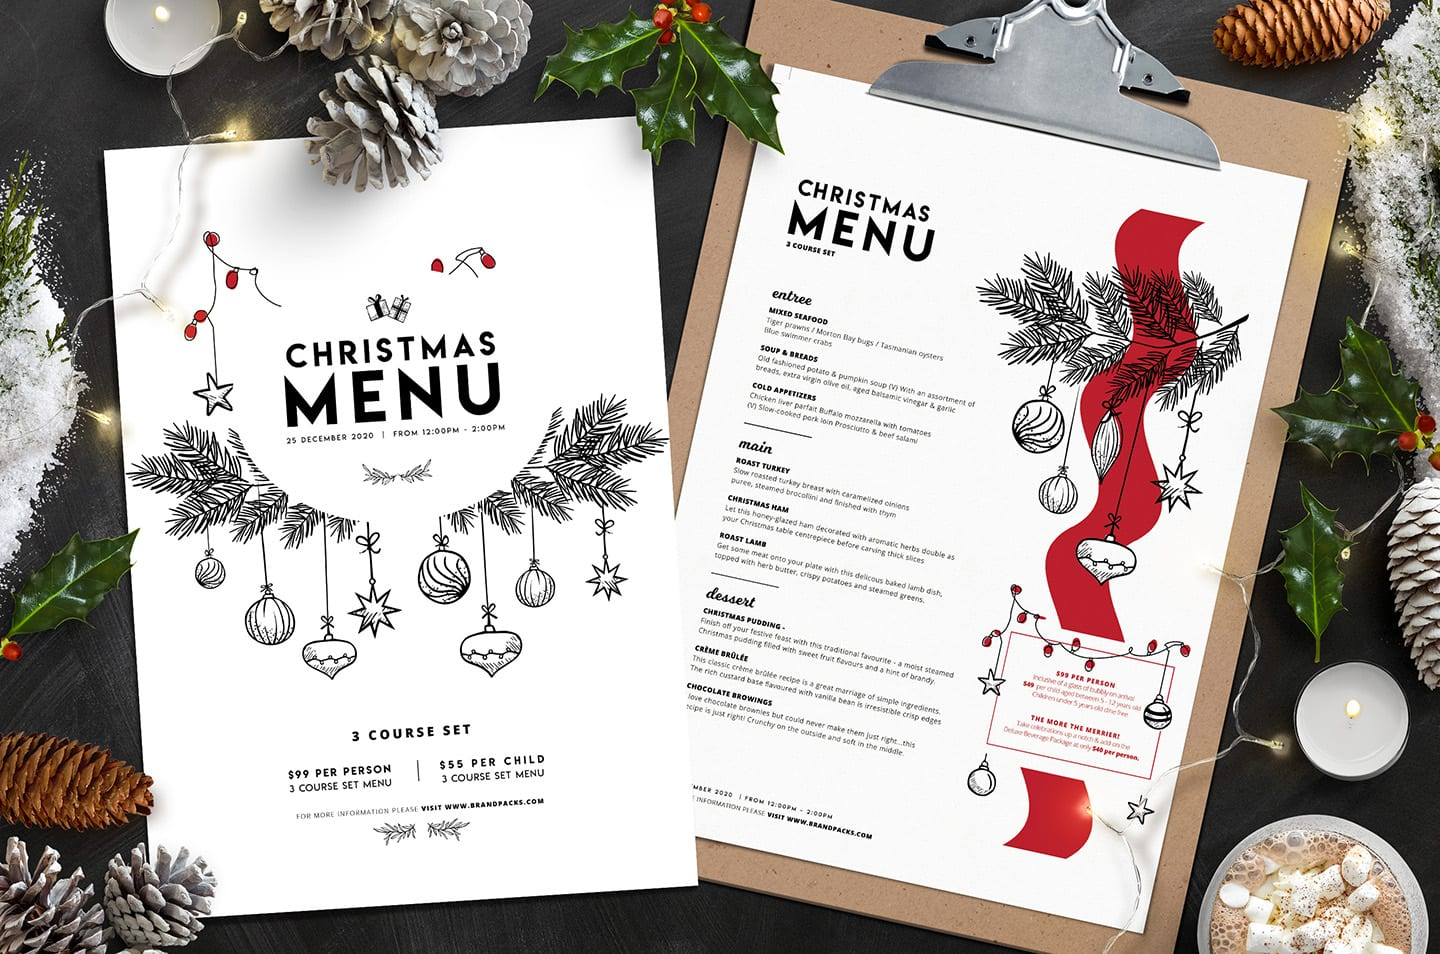 Christmas Menu.Christmas Menu Template Vol 3 Brandpacks